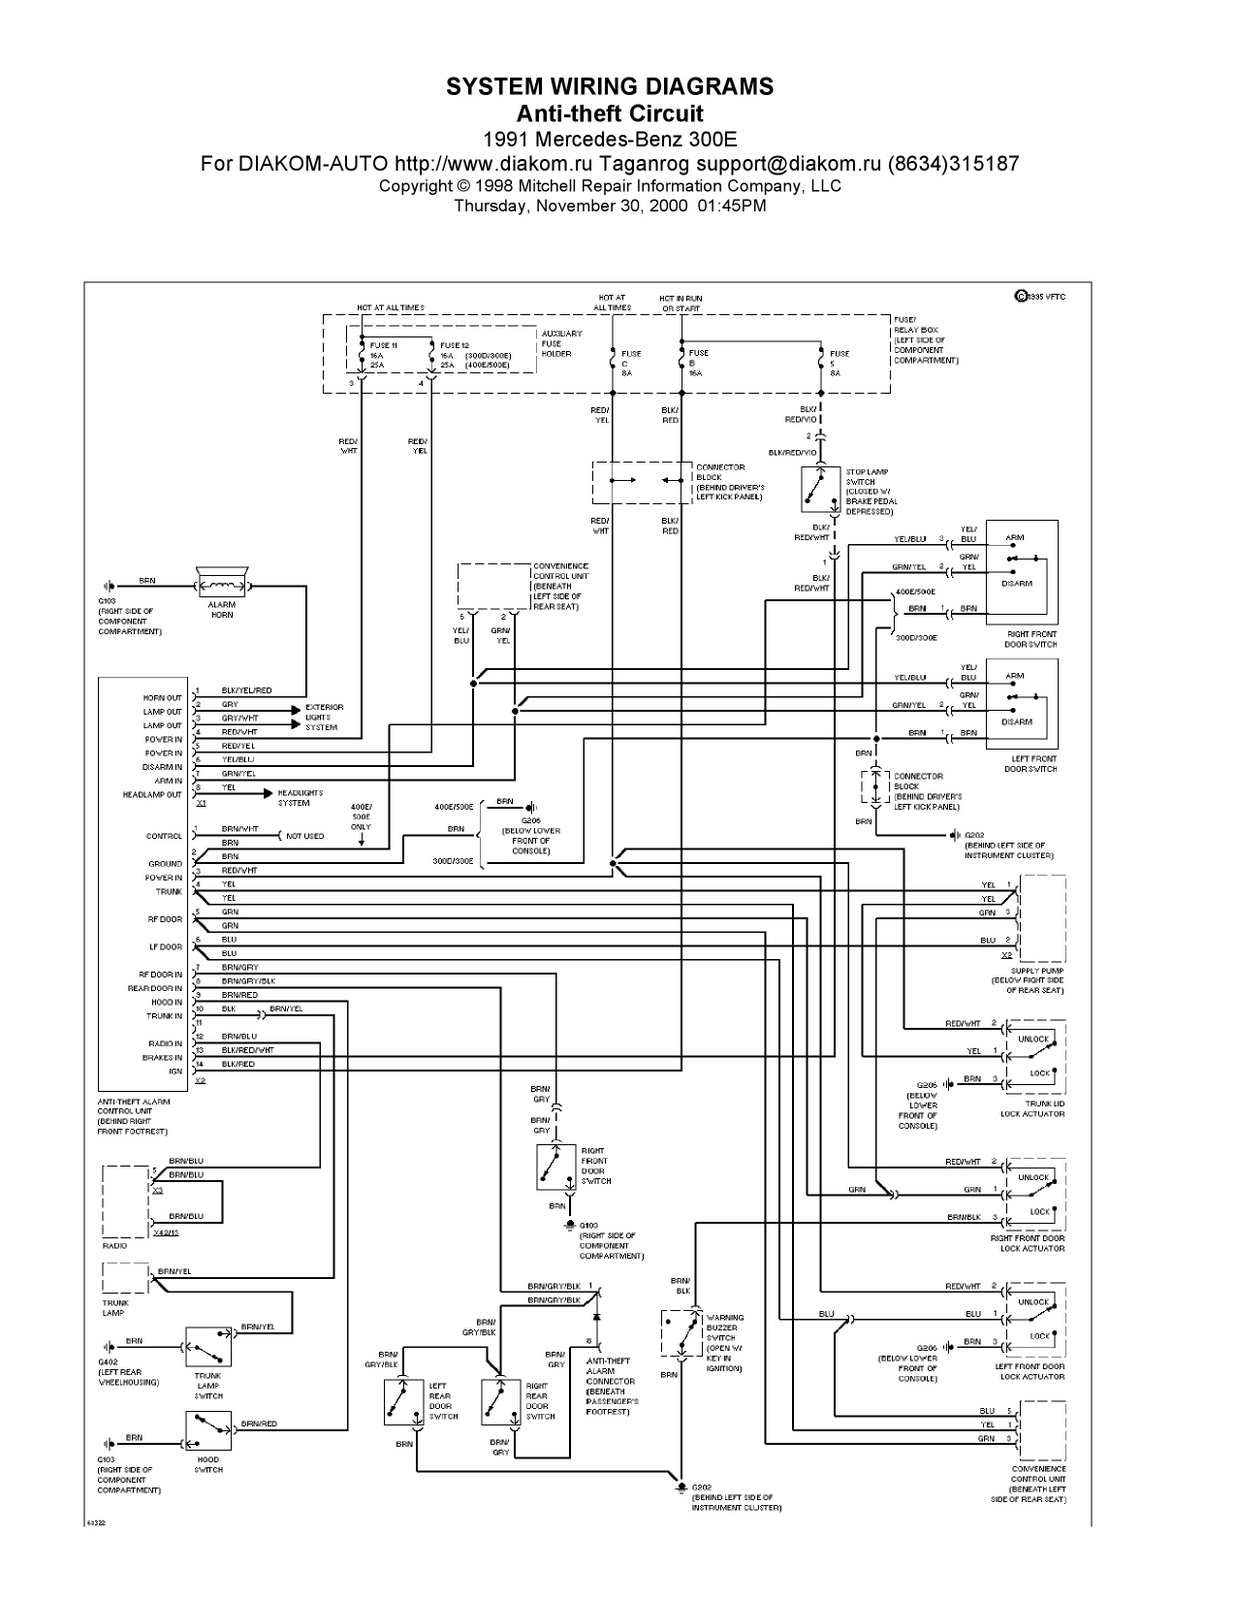 Mercedes W124 300e Wiring Diagram - Wiring Diagram Schematic Name on 1995 chevy suburban radio amplifier diagram, mercedes sunroof diagram, mercedes e320 wiring diagram, mercedes sprinter wiring diagram, mercedes engine diagram, mercedes speakers, mercedes-benz relay diagram, mercedes electrical diagram, mercedes benz wiring diagram, mercedes fuse diagram, mercedes alarm diagram, mercedes transmission diagram, mercedes fuel pump diagram, mercedes steering angle sensor wiring diagram, mercedes central locking vacuum pump wire diagram, mercedes ignition diagram, mercedes brakes diagram, 1987 corvette ignition switch diagram, mercedes radio plug, 1990 300e mercedes-benz stereo wire diagram,